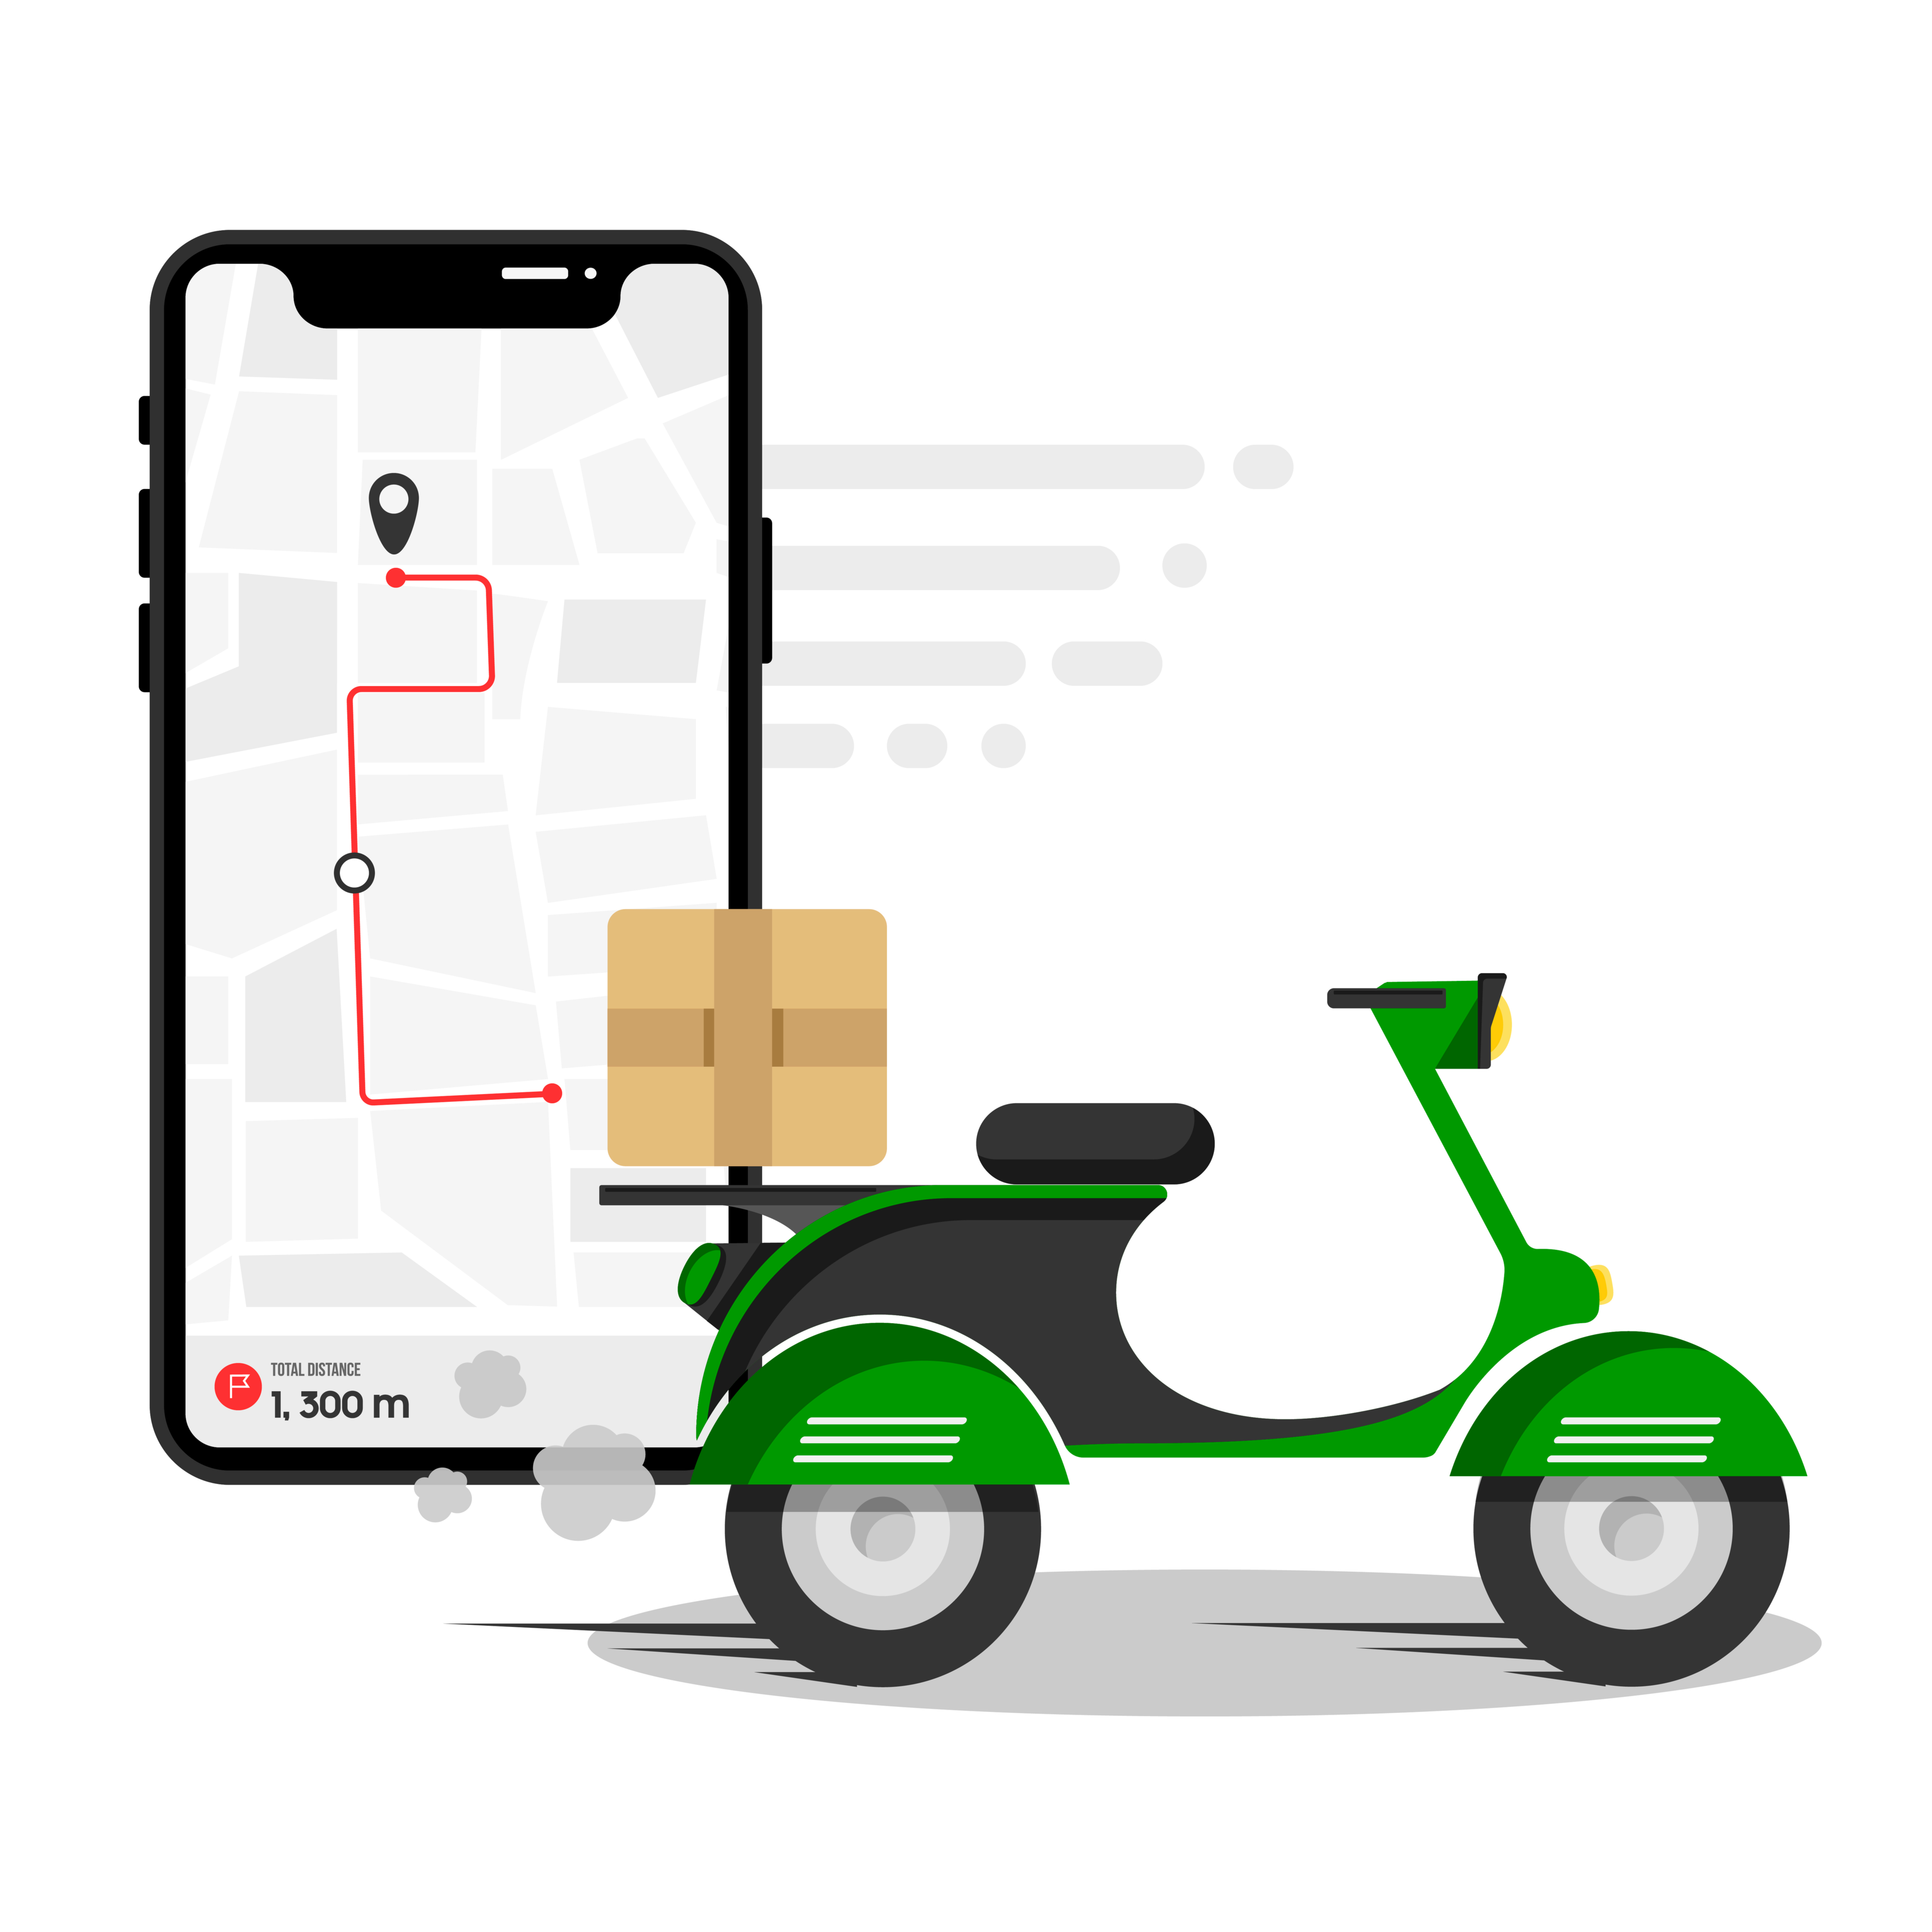 Delivery Business Ideas for 2021